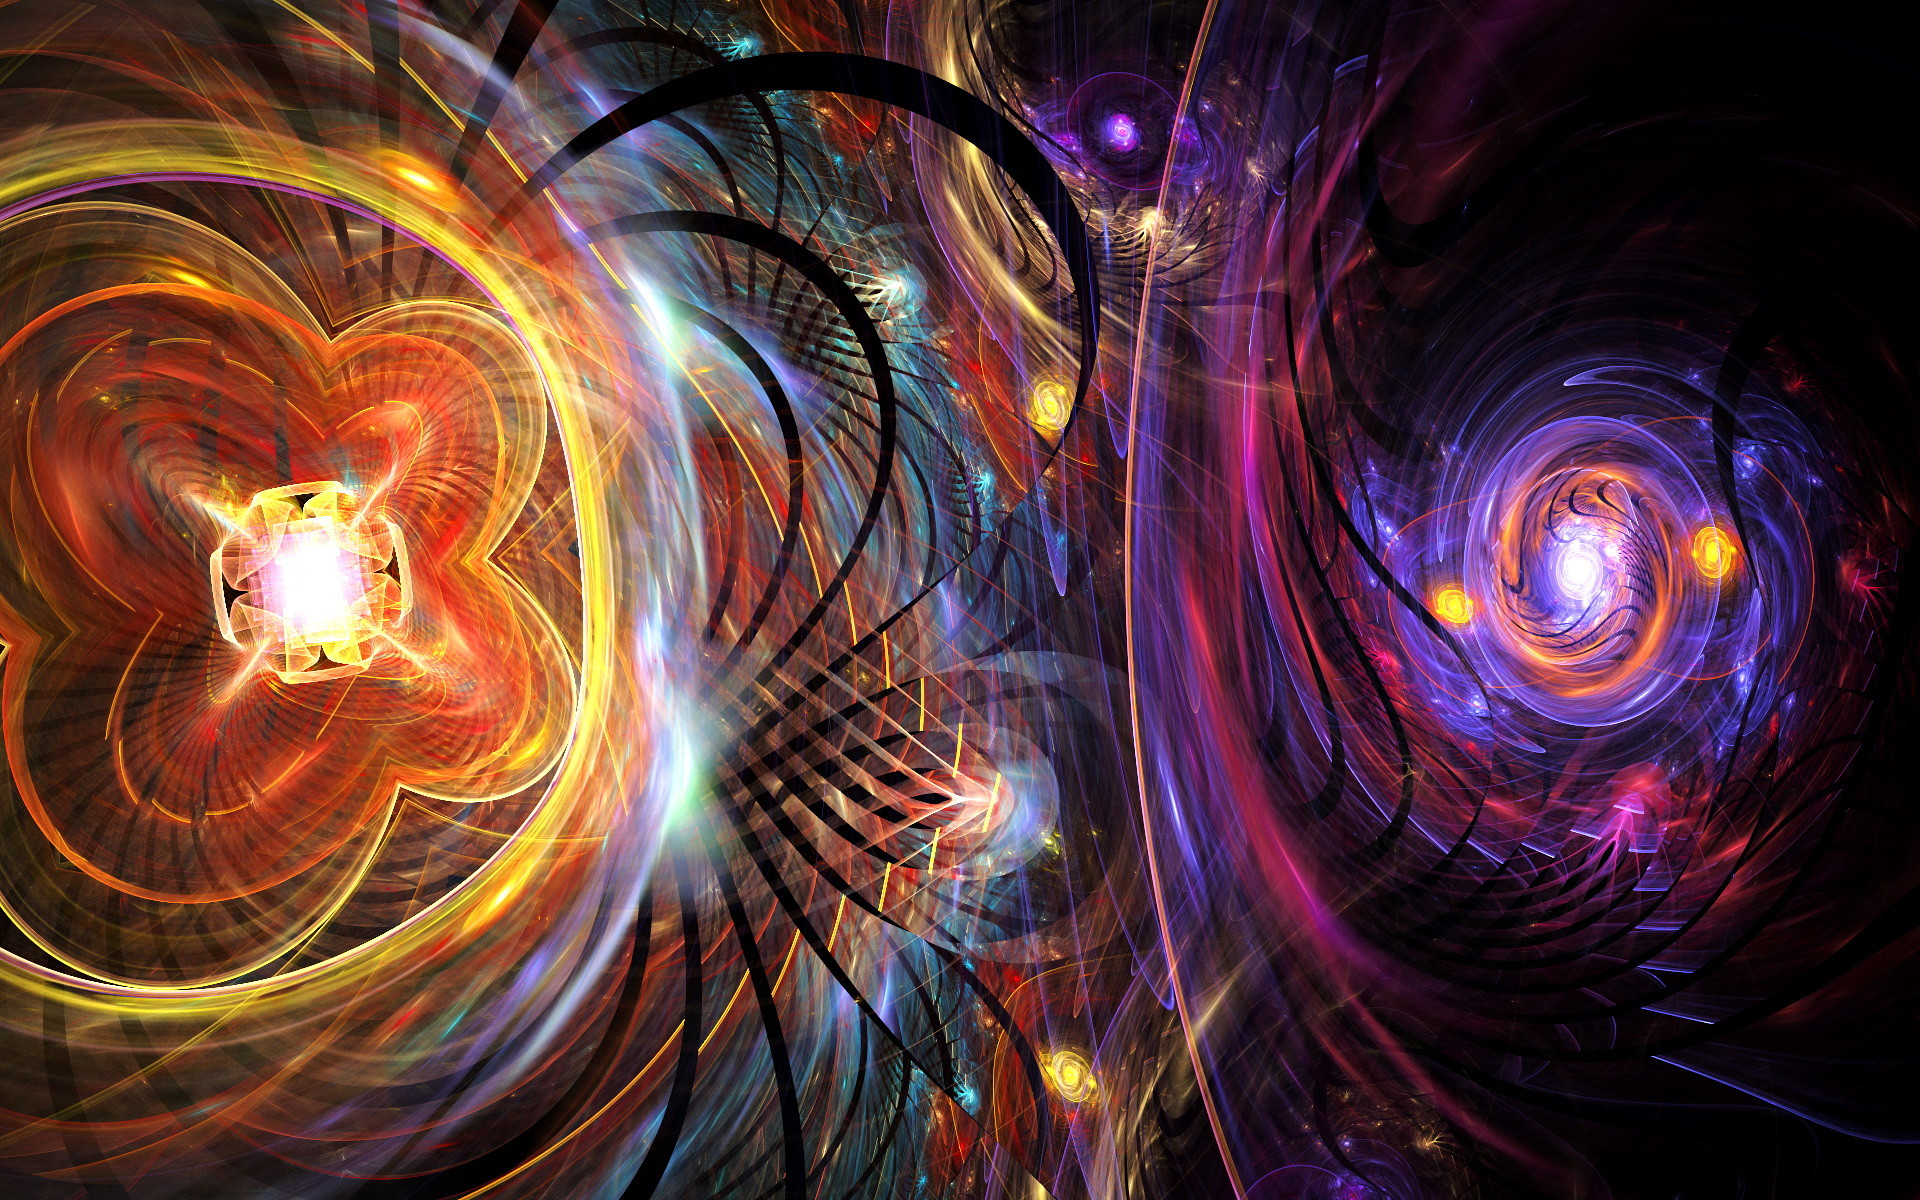 1920x1200 Trippy Space Wallpapers Images On Wallpaper Hd 1920 X 1200 Px 69231 KB Mushroom Pictures Iphone